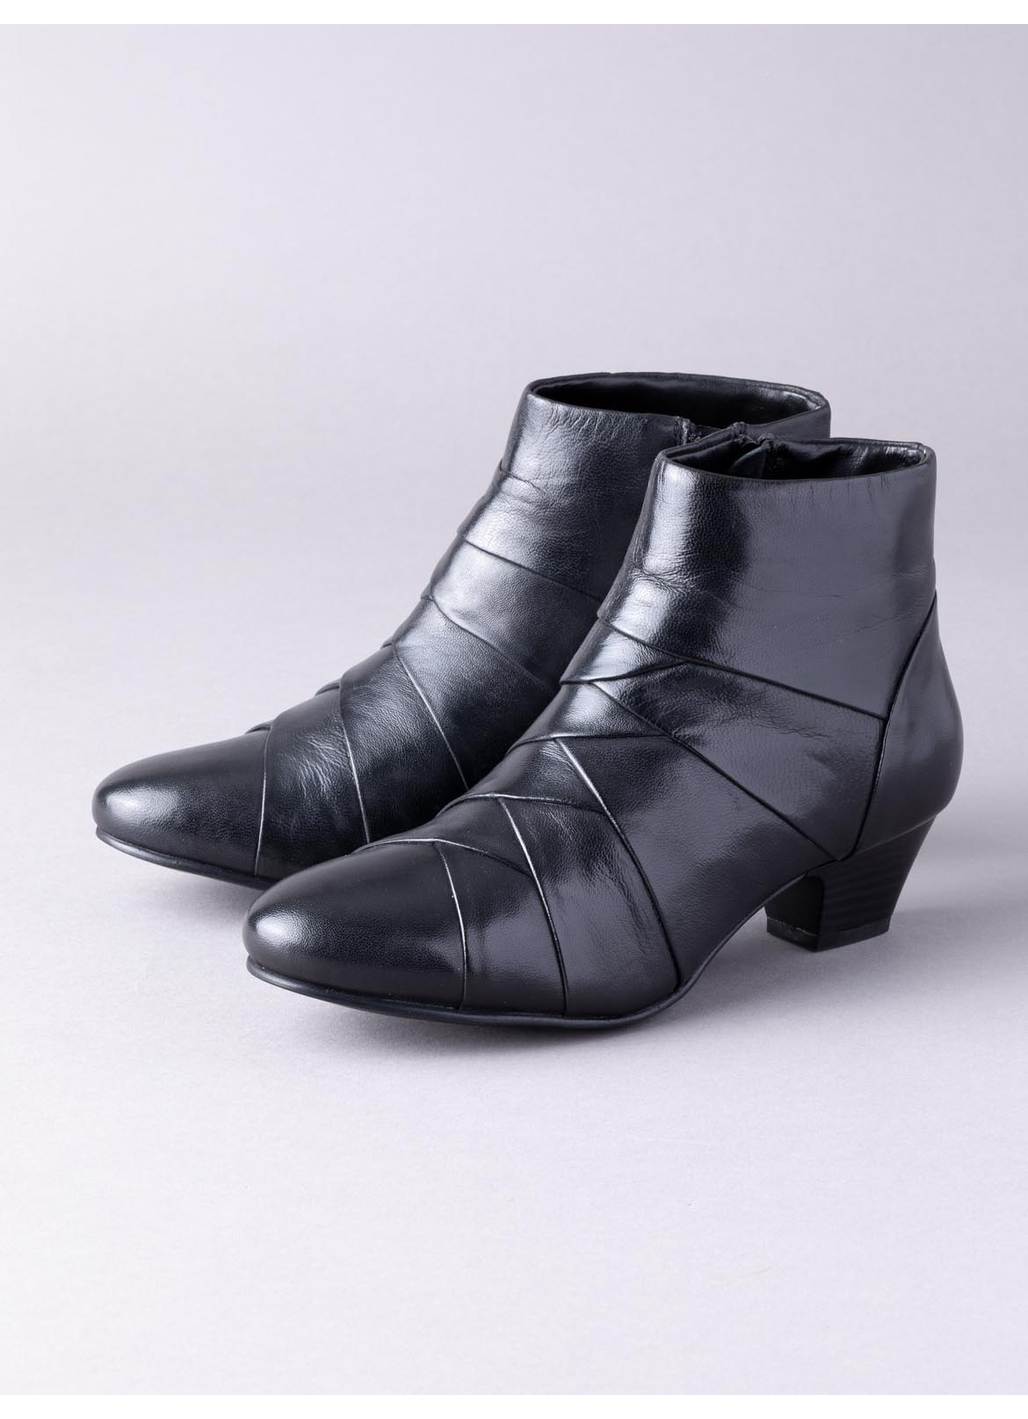 Lotus Tara Leather Ankle Boots in Black